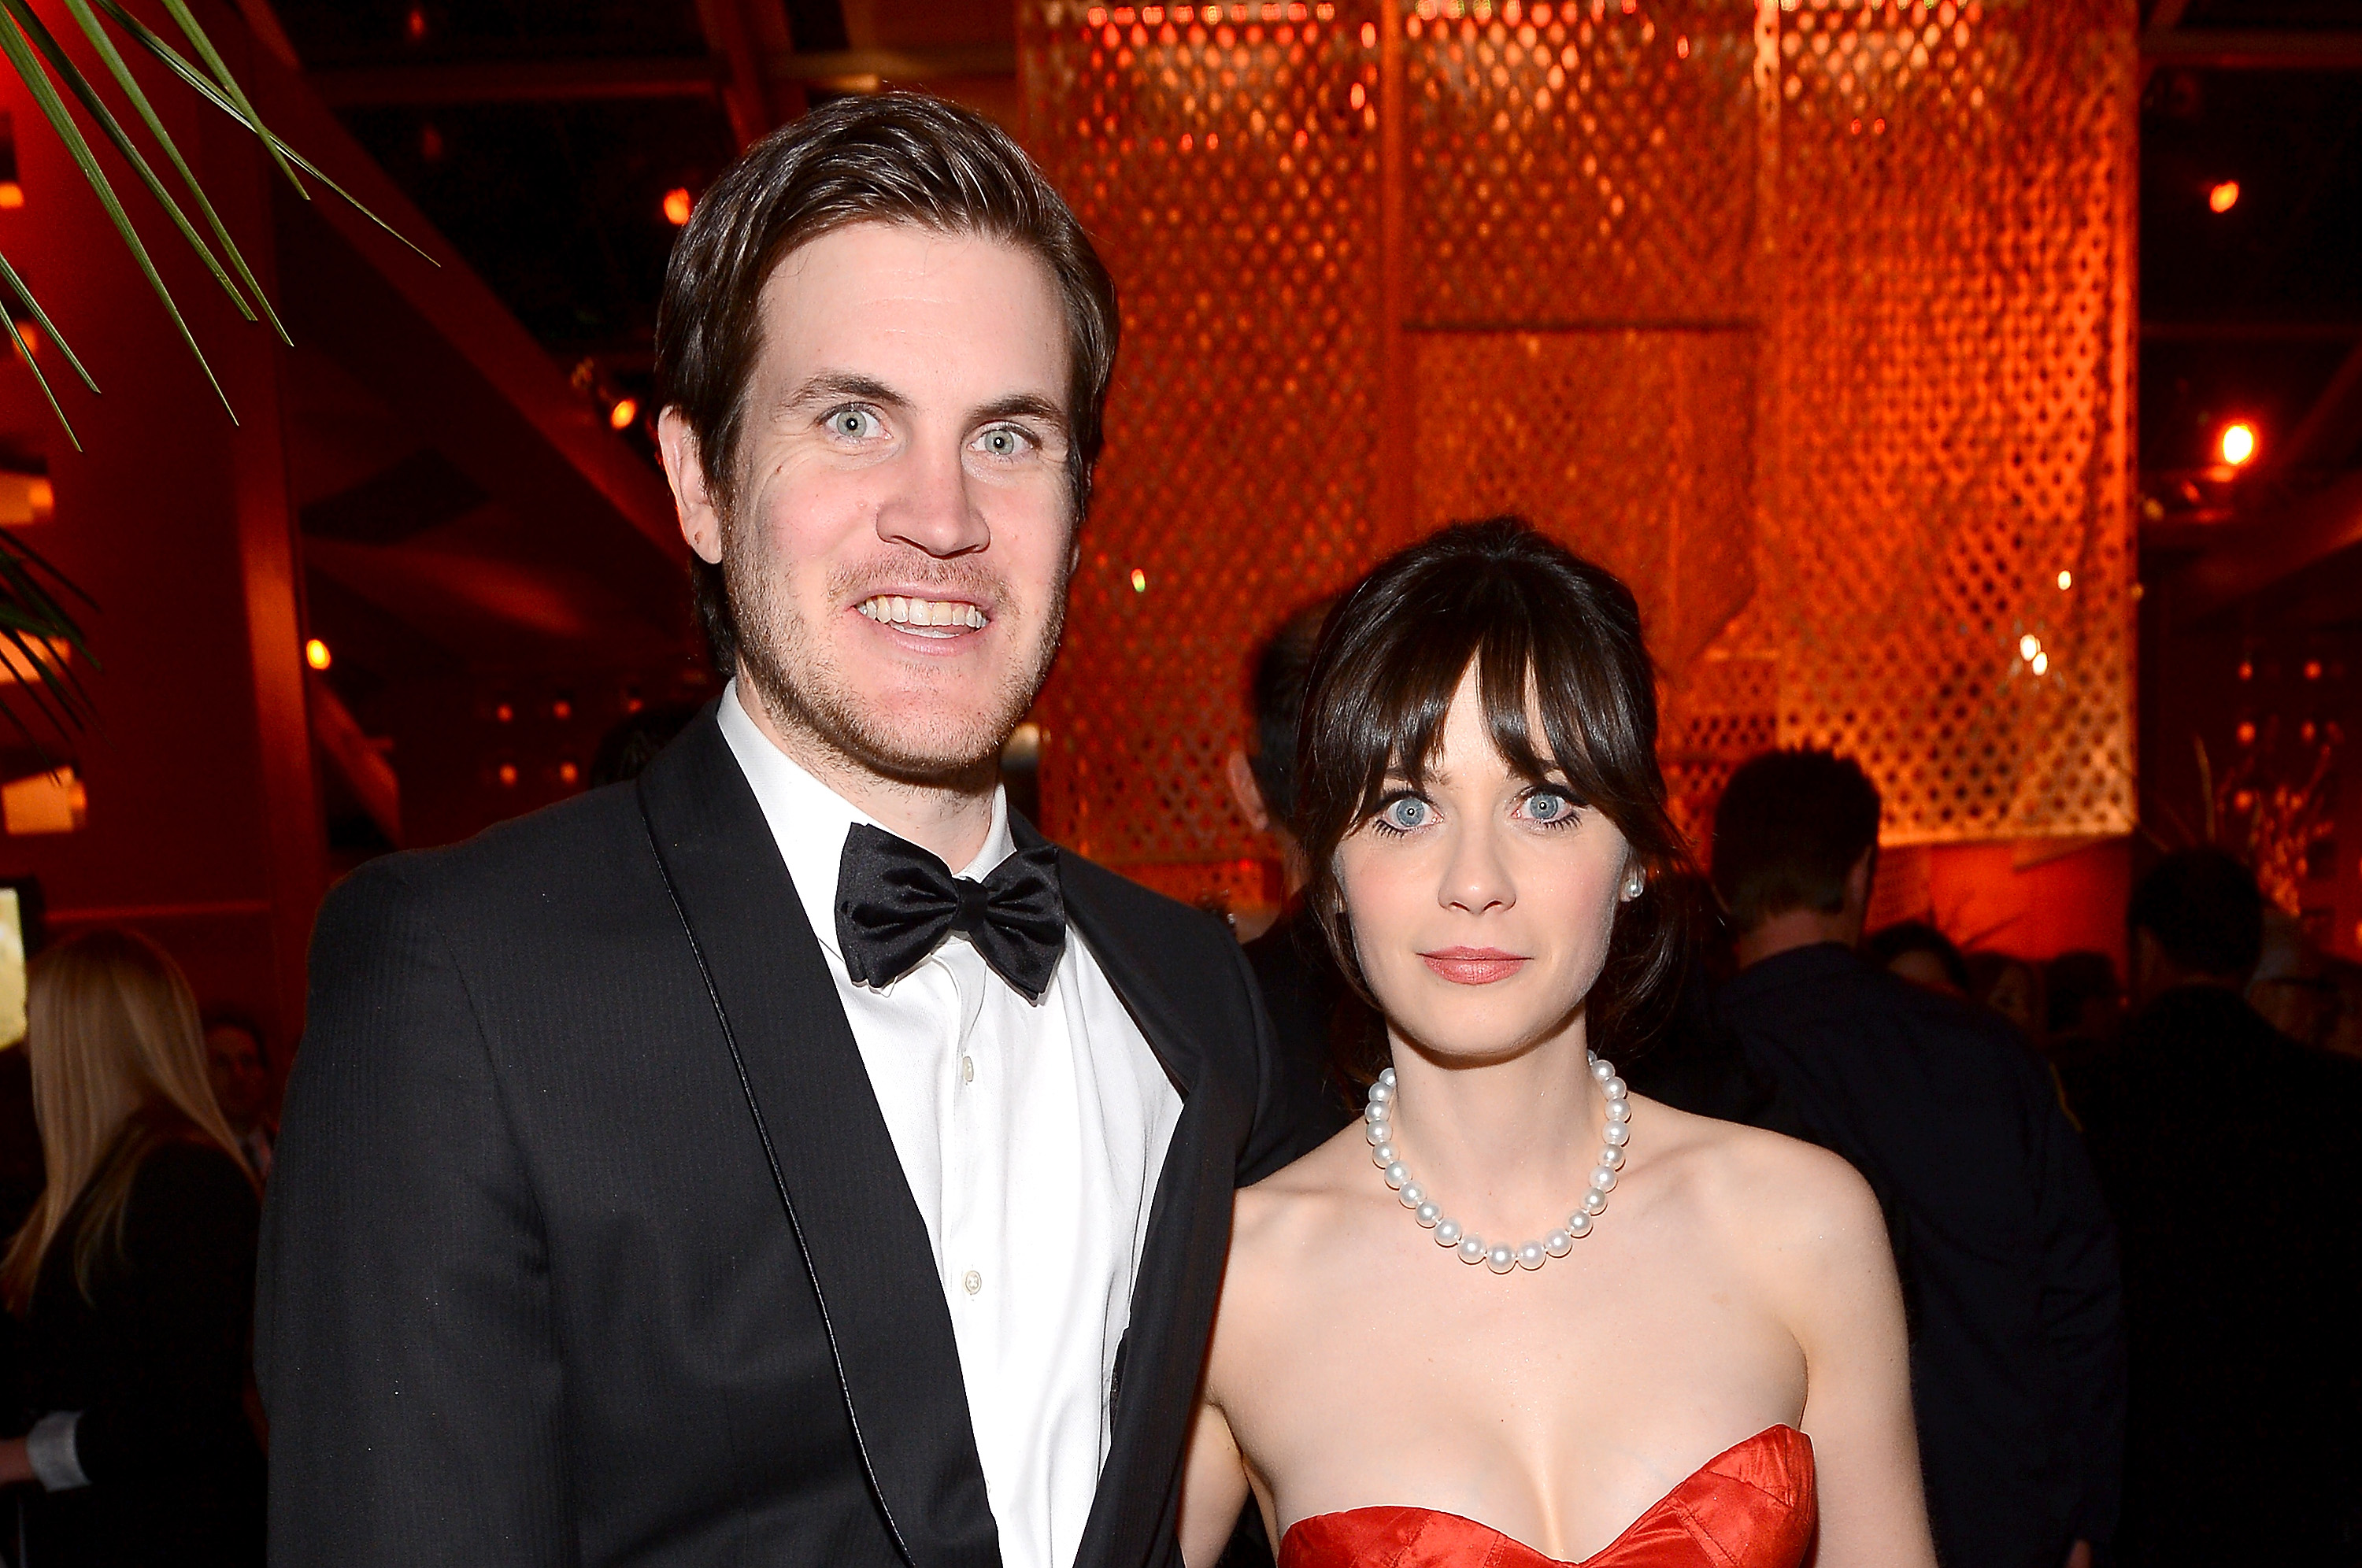 Zooey Deschanel and Jamie Linden attended the Fox Network Golden Globes party.